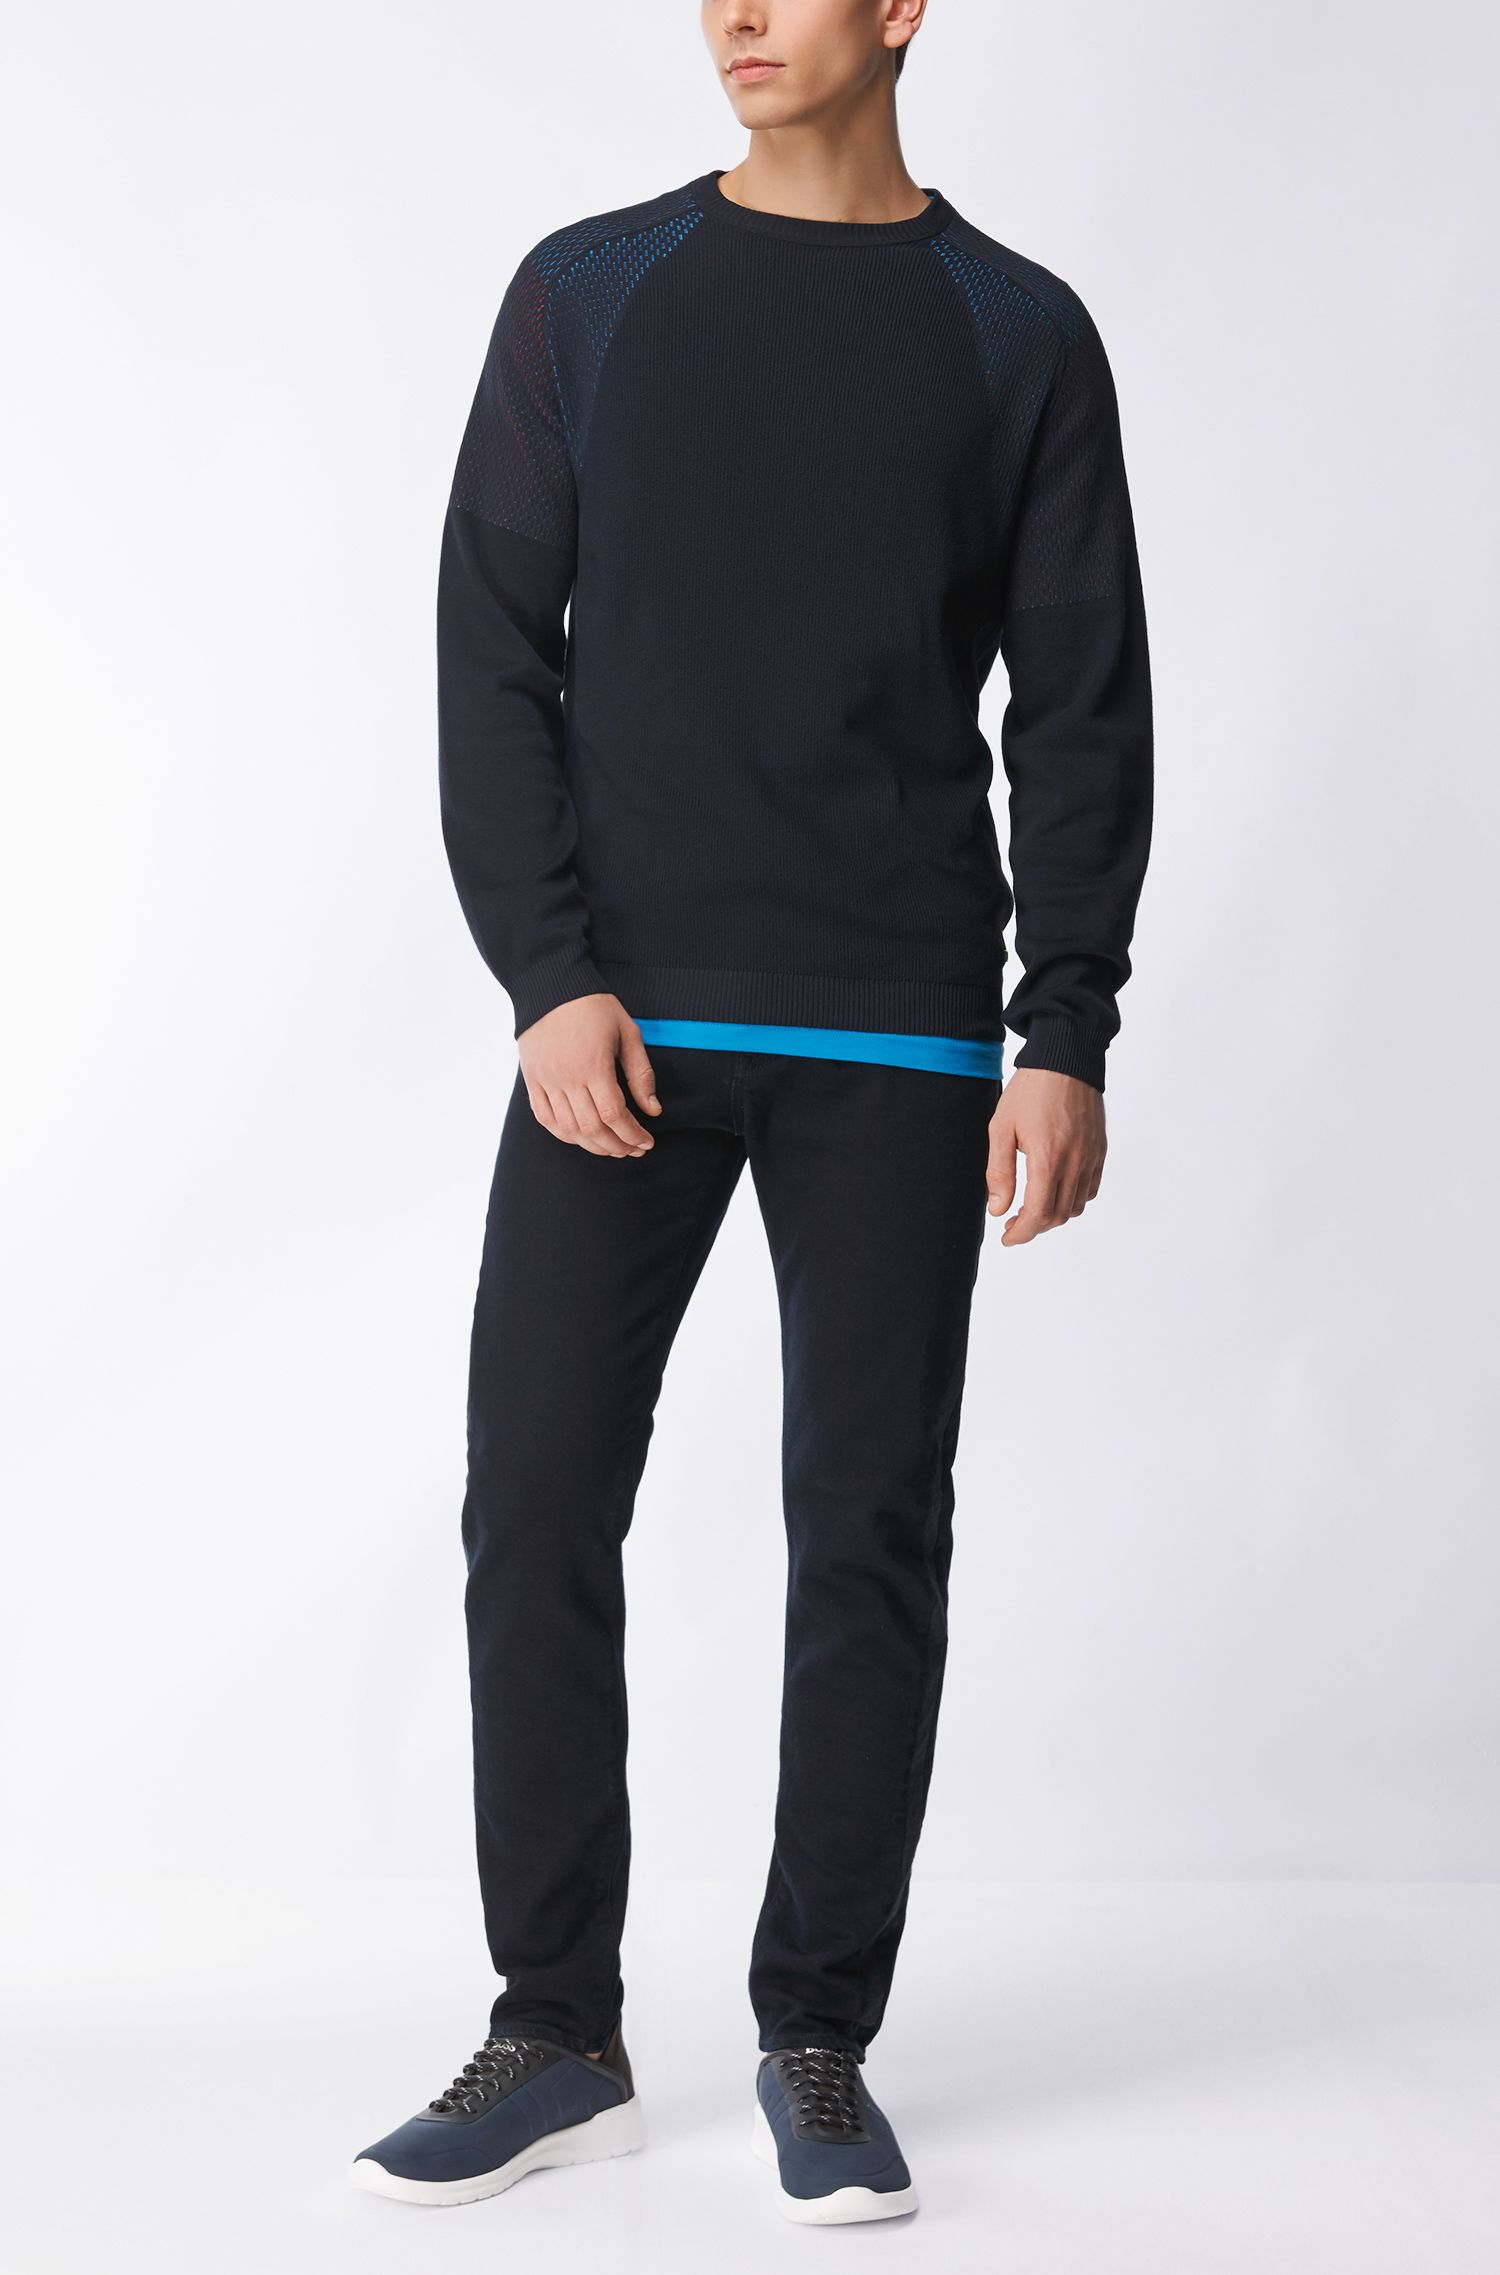 Technical Cotton Blend Sweater | Roser